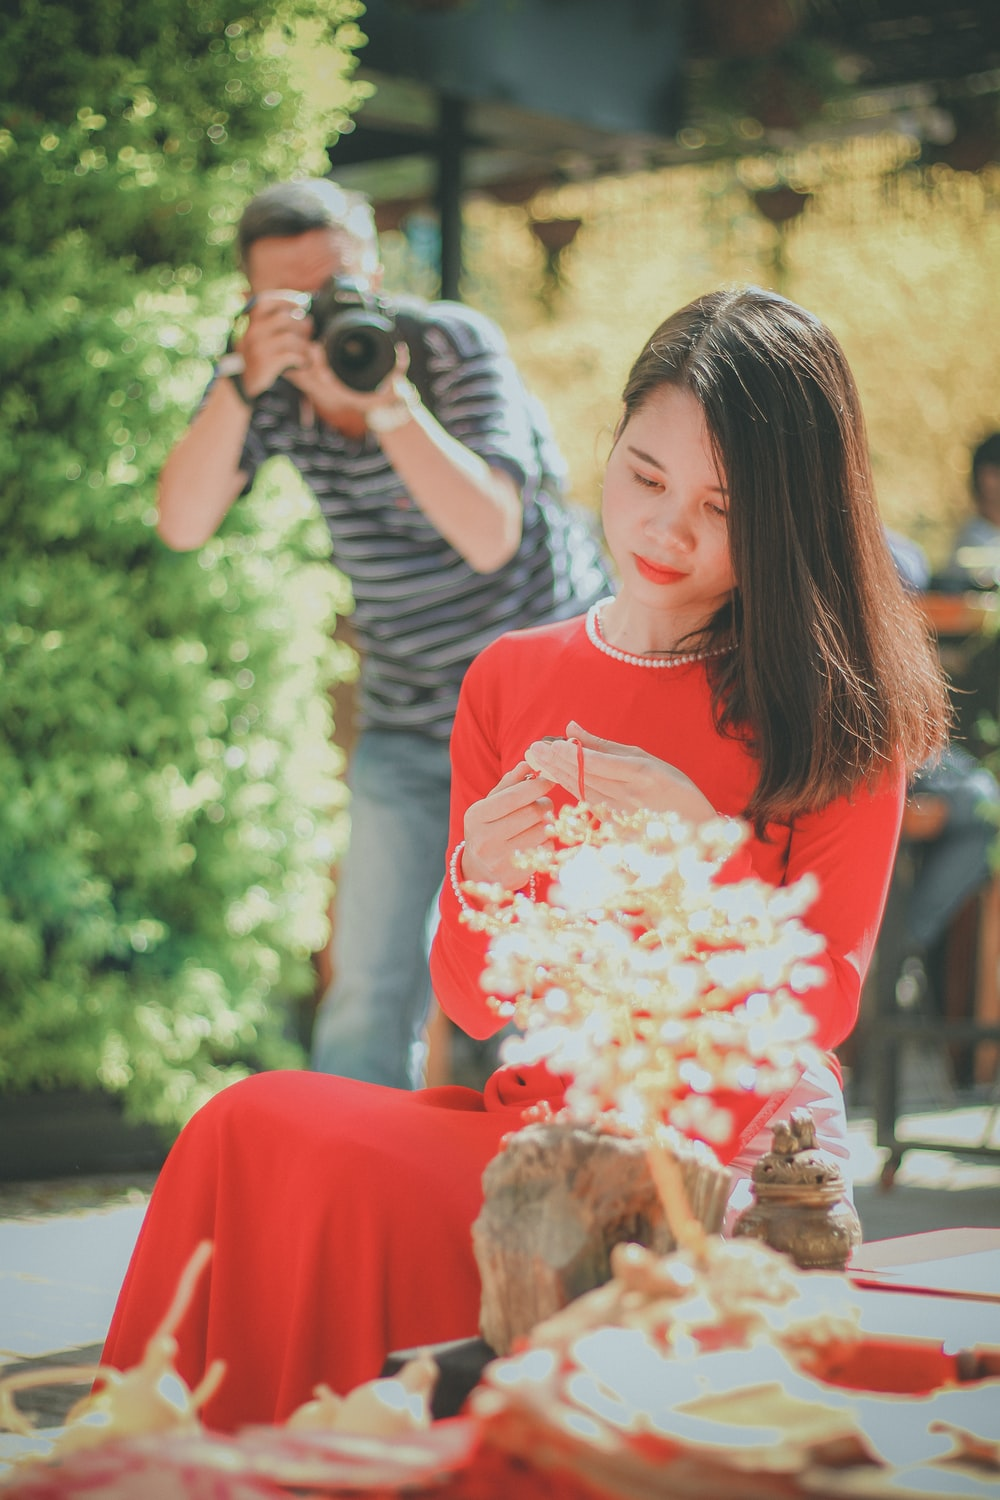 man taking photo of girl sitting in front of white flowers